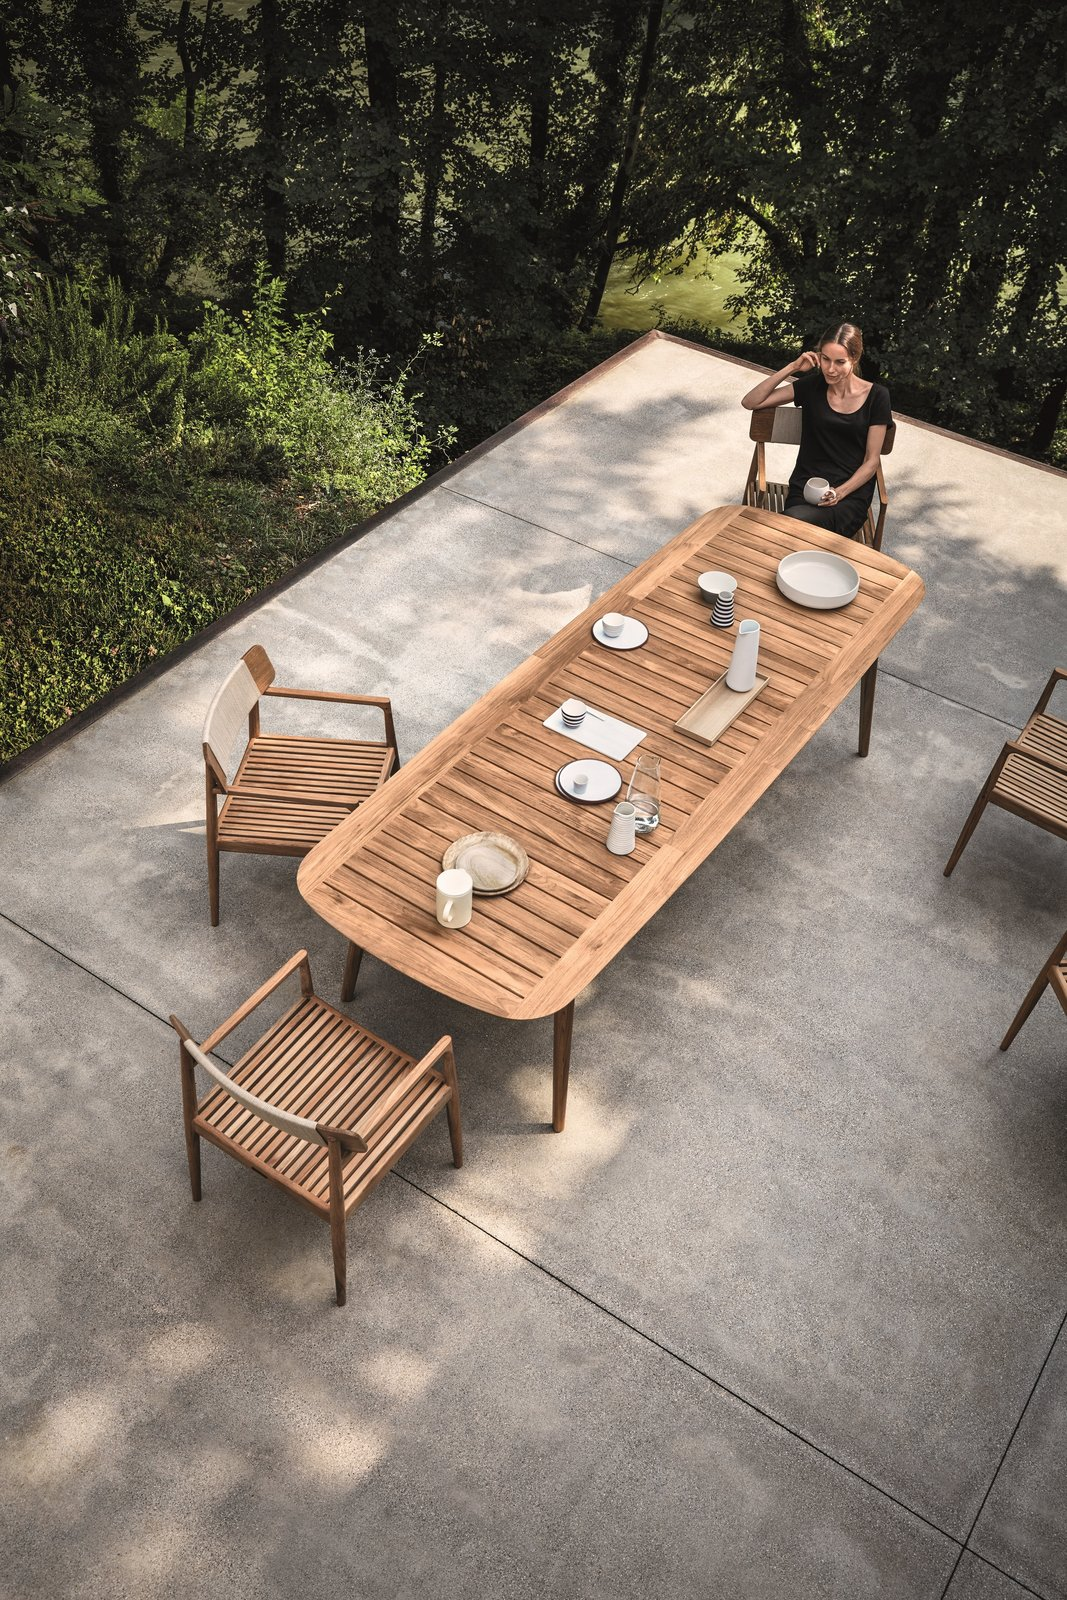 Inspired by teak decking, and echoing the craftsmanship and design of the Tea Clippers that opened trade routes around the world, Pedersen clearly references his inspiration, using generous deck-like slats, finely tapered legs that hint at a ship's mast—even giving the table a hull-like edge. The Clipper collection is simultaneously a nod to a nautical past, as well as a new take on al fresco dining.